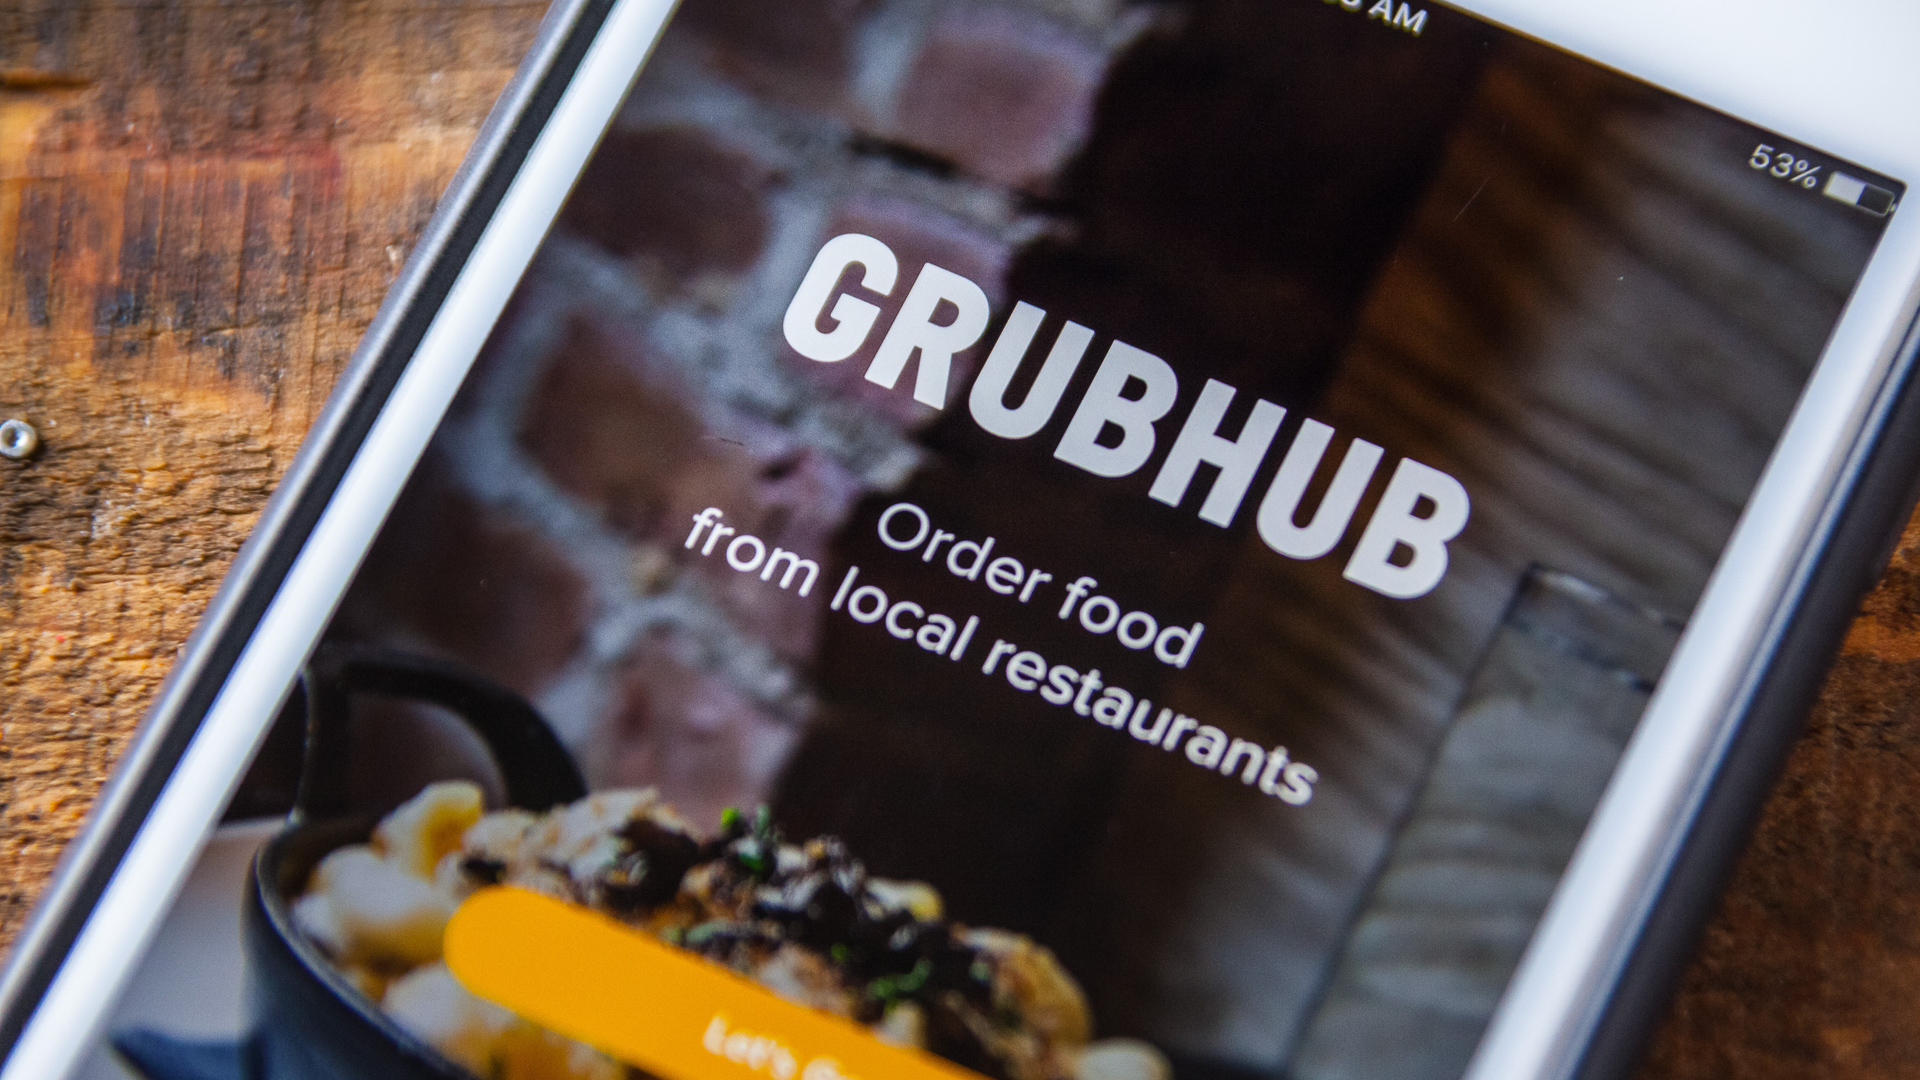 Grubhub, Postmates and the Biggest Startup Acquisitions of 2020